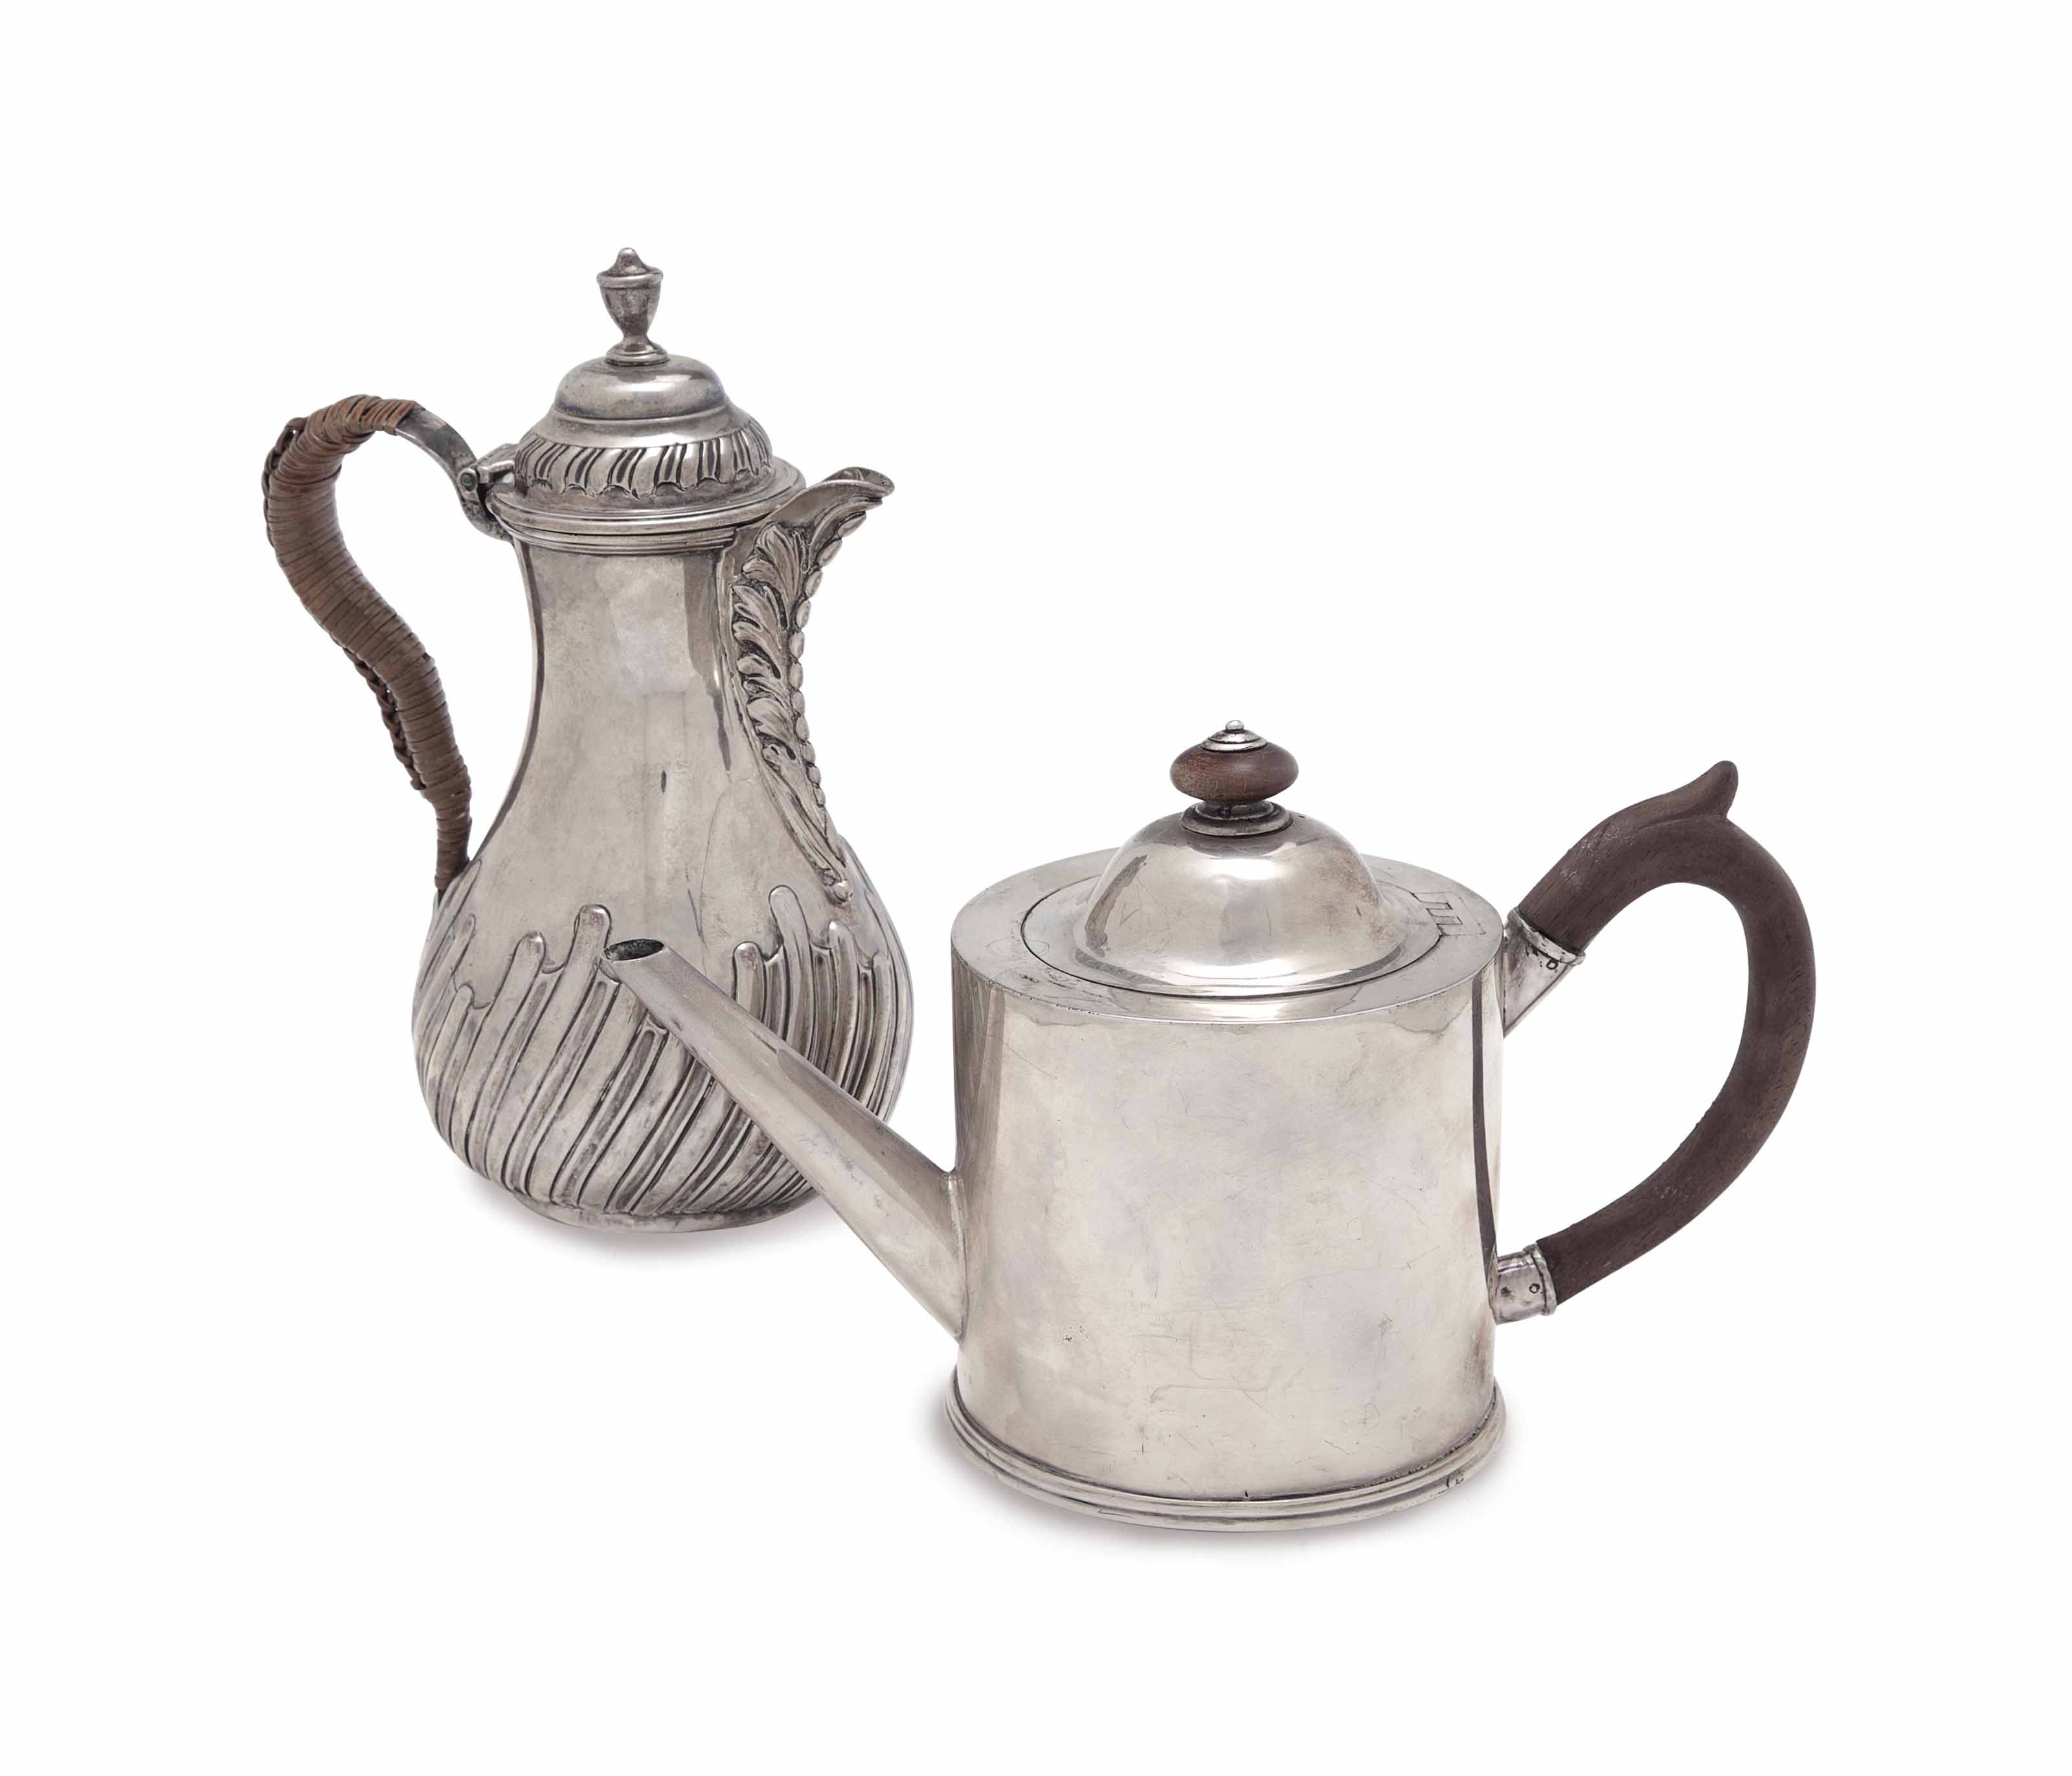 A GEORGE III SILVER HOT WATER JUG, AND A DRUM-FORM TEAPOT,